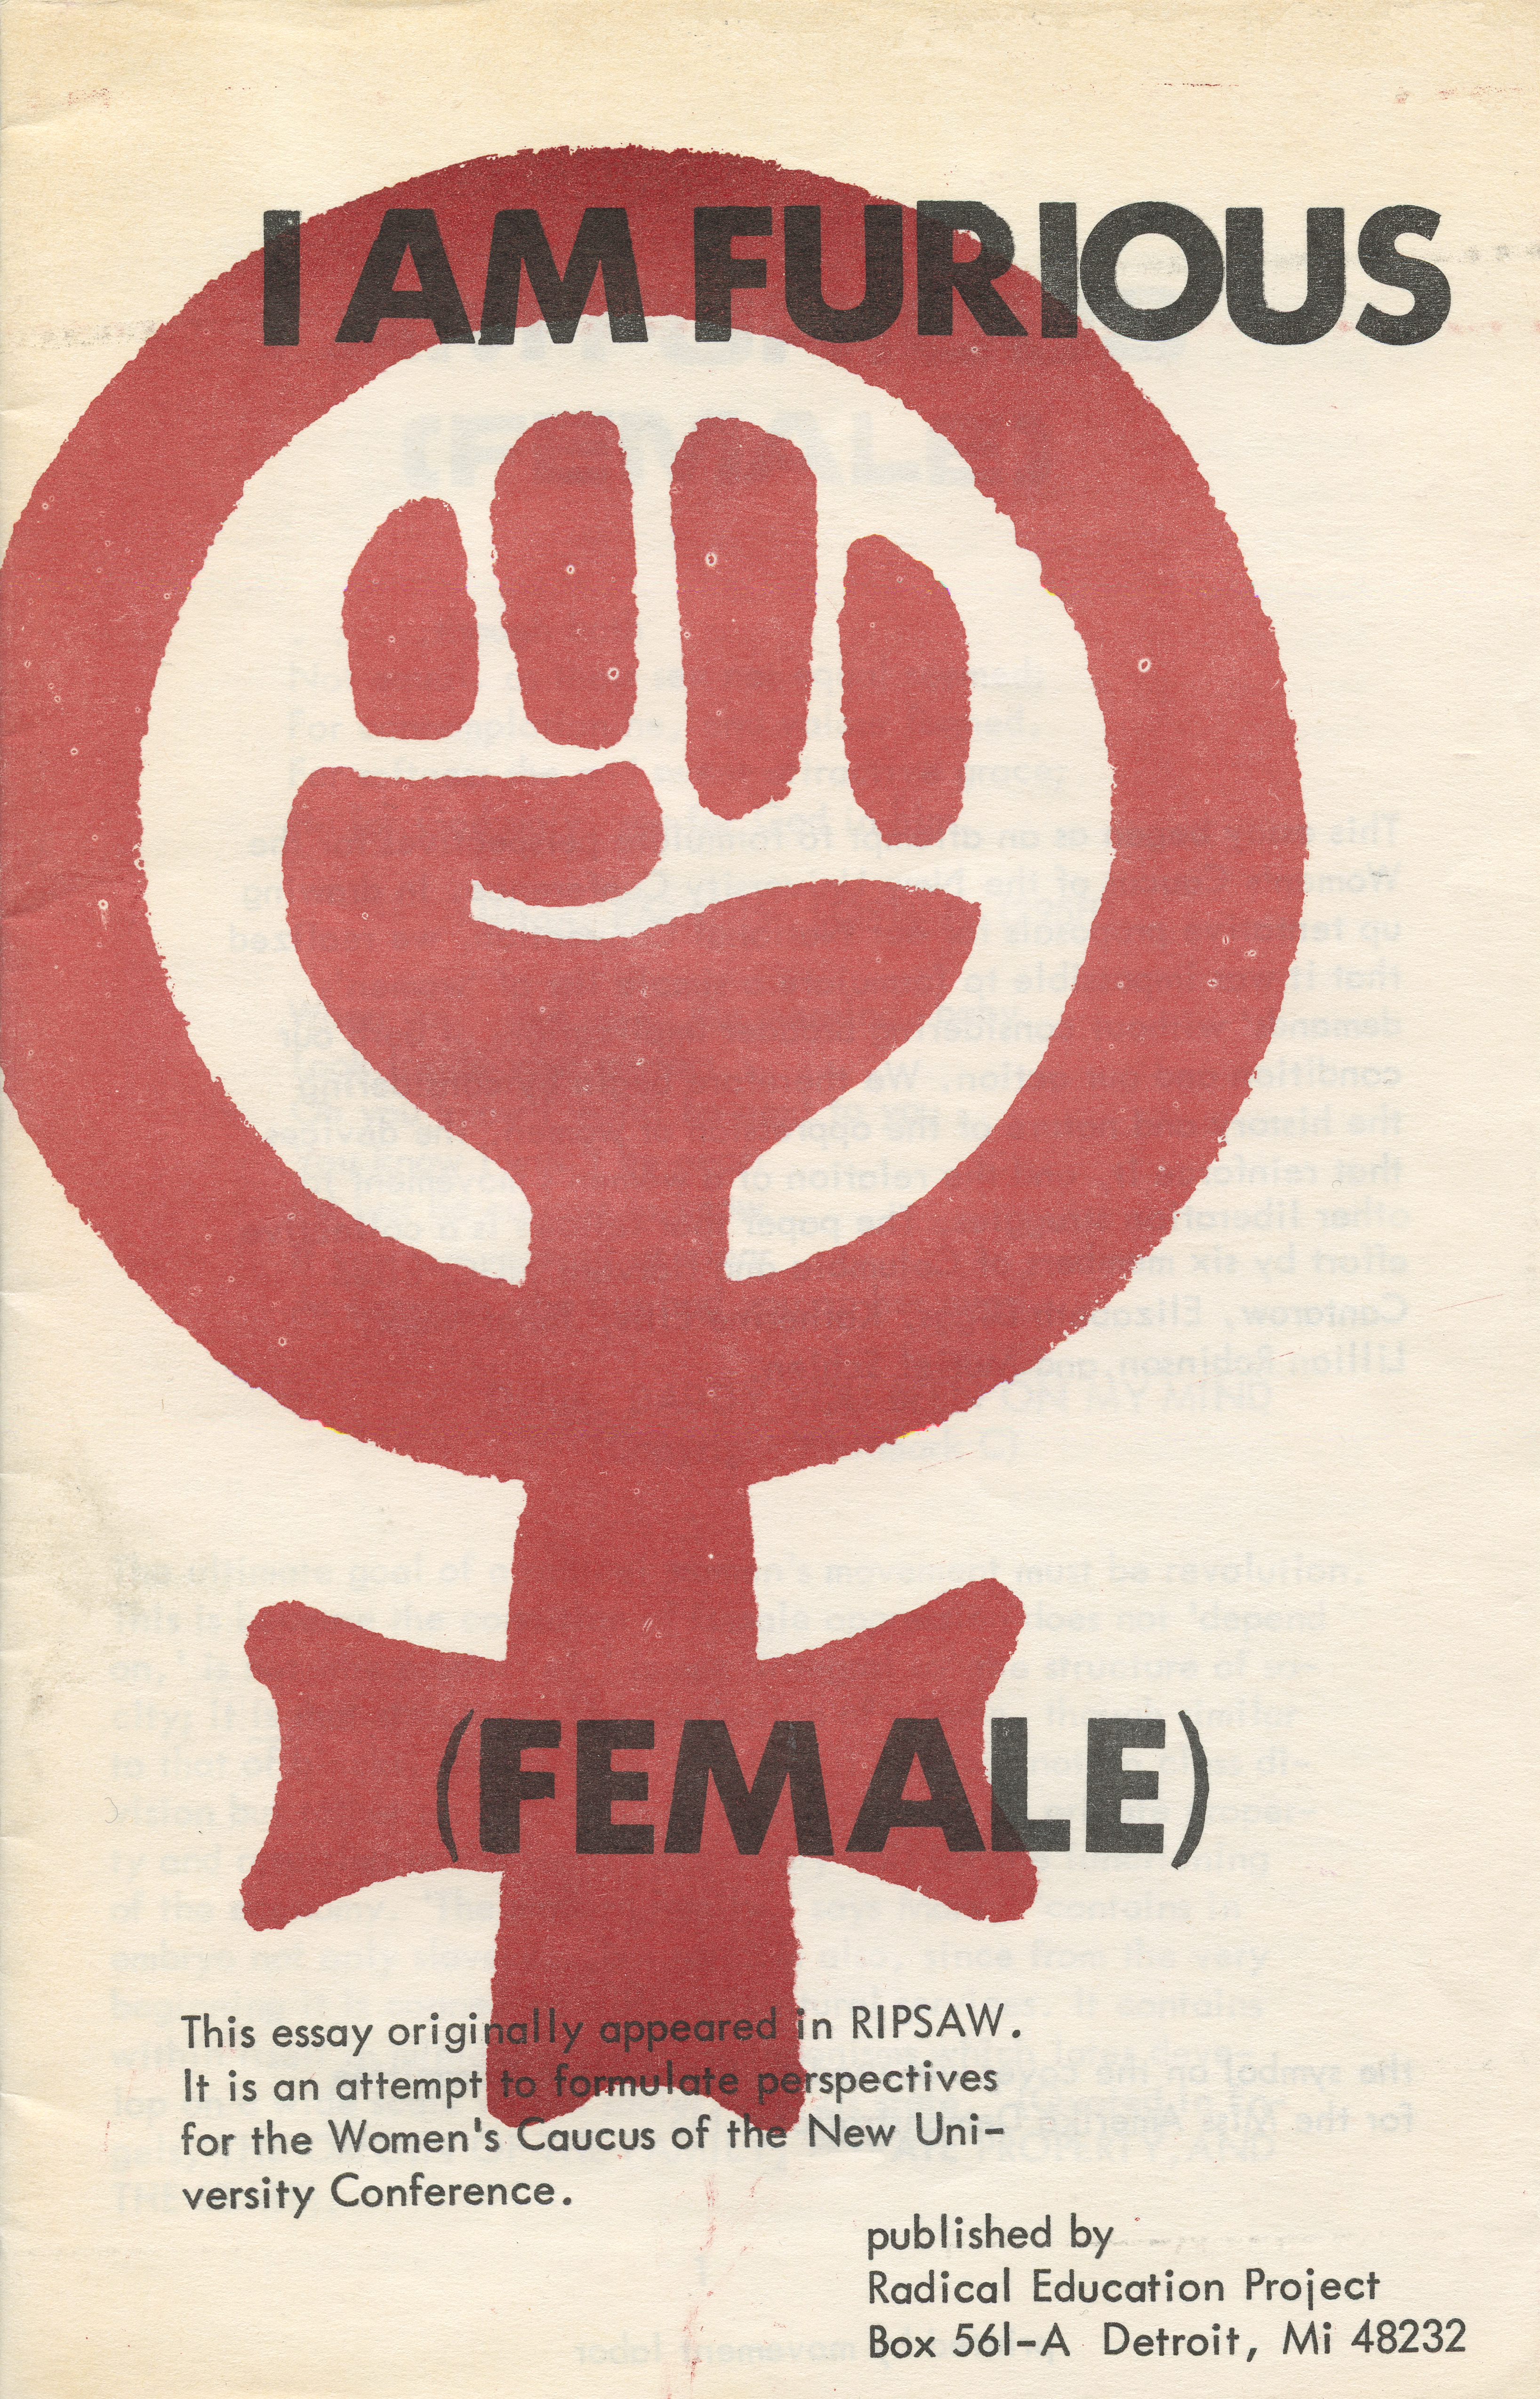 Cover, I Am Furious (Female), Radical Education Project, Detroit, 1969. University of Michigan Library (Special Collections Library)